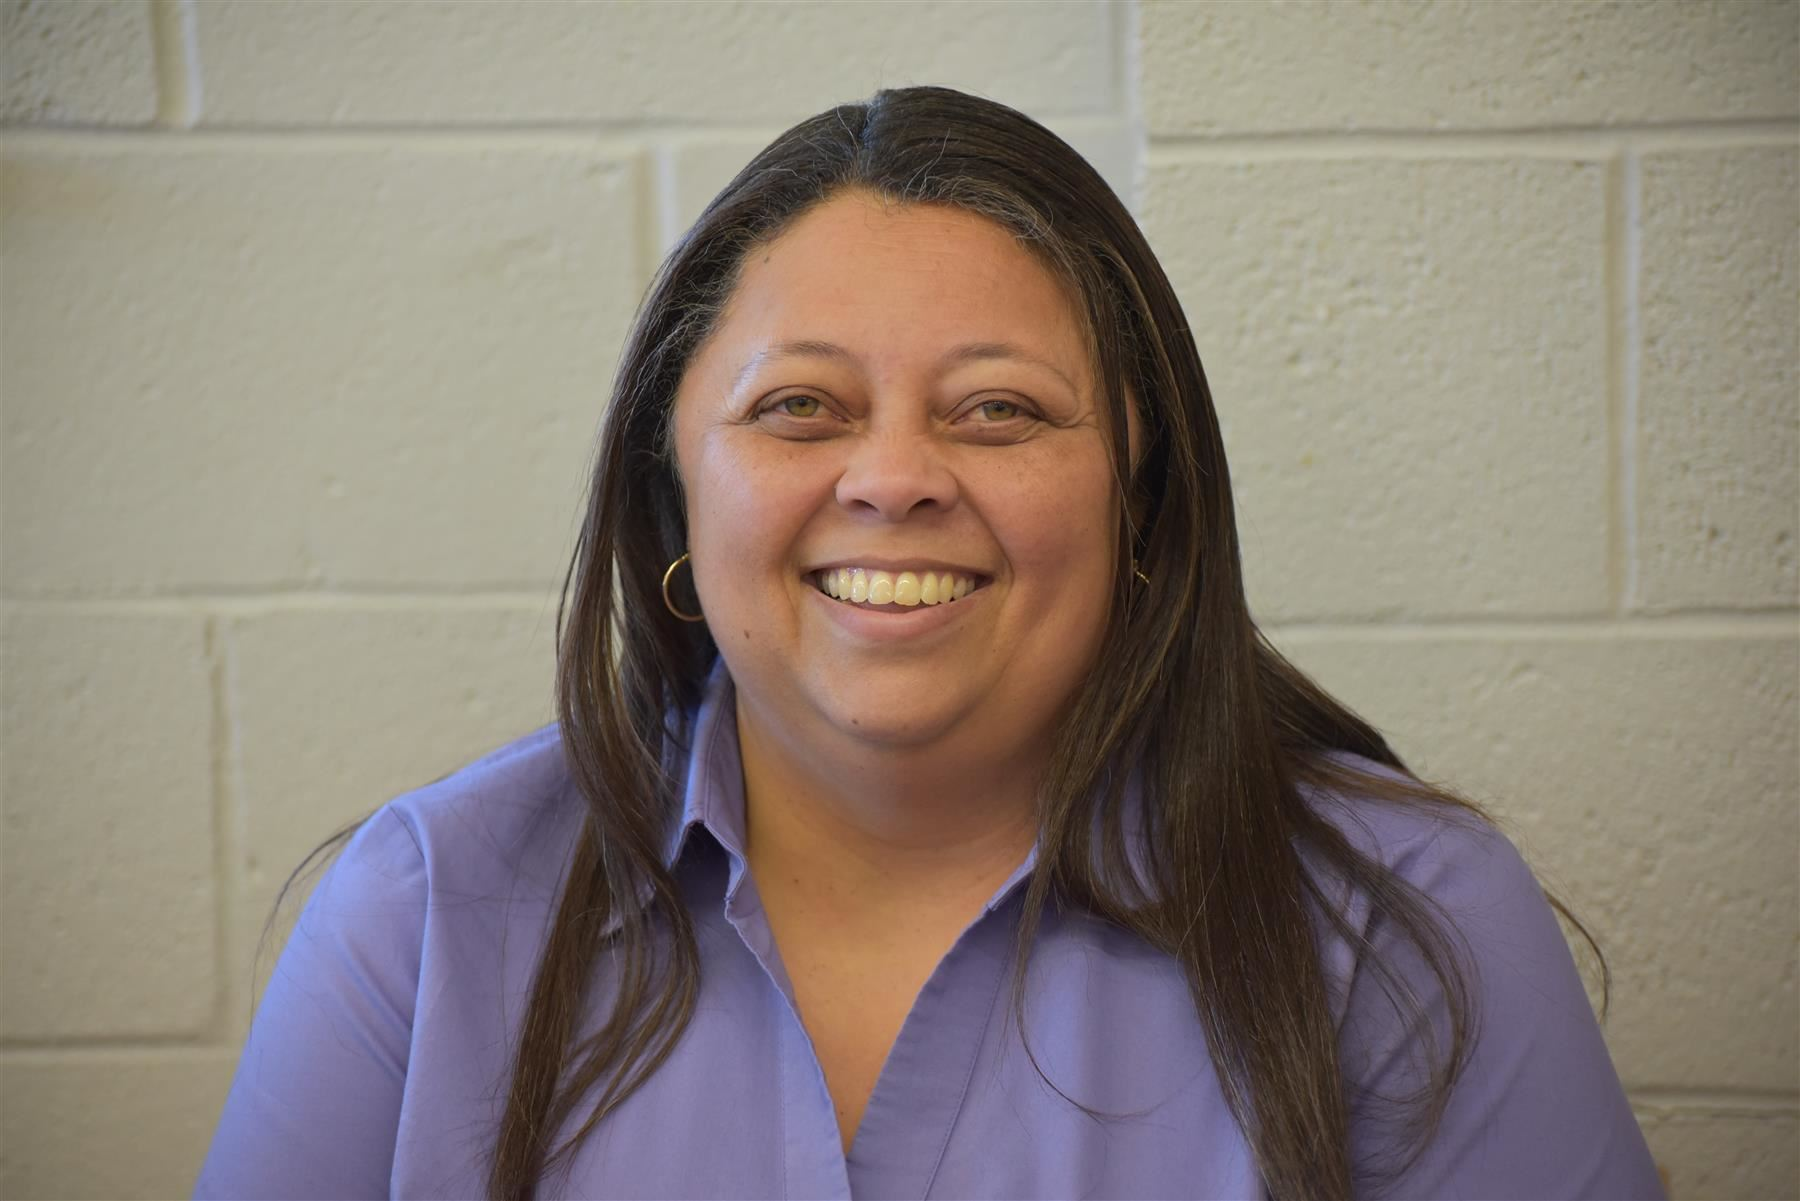 Headshot of Falisa Carter, new Principal, Bunn Elementary.